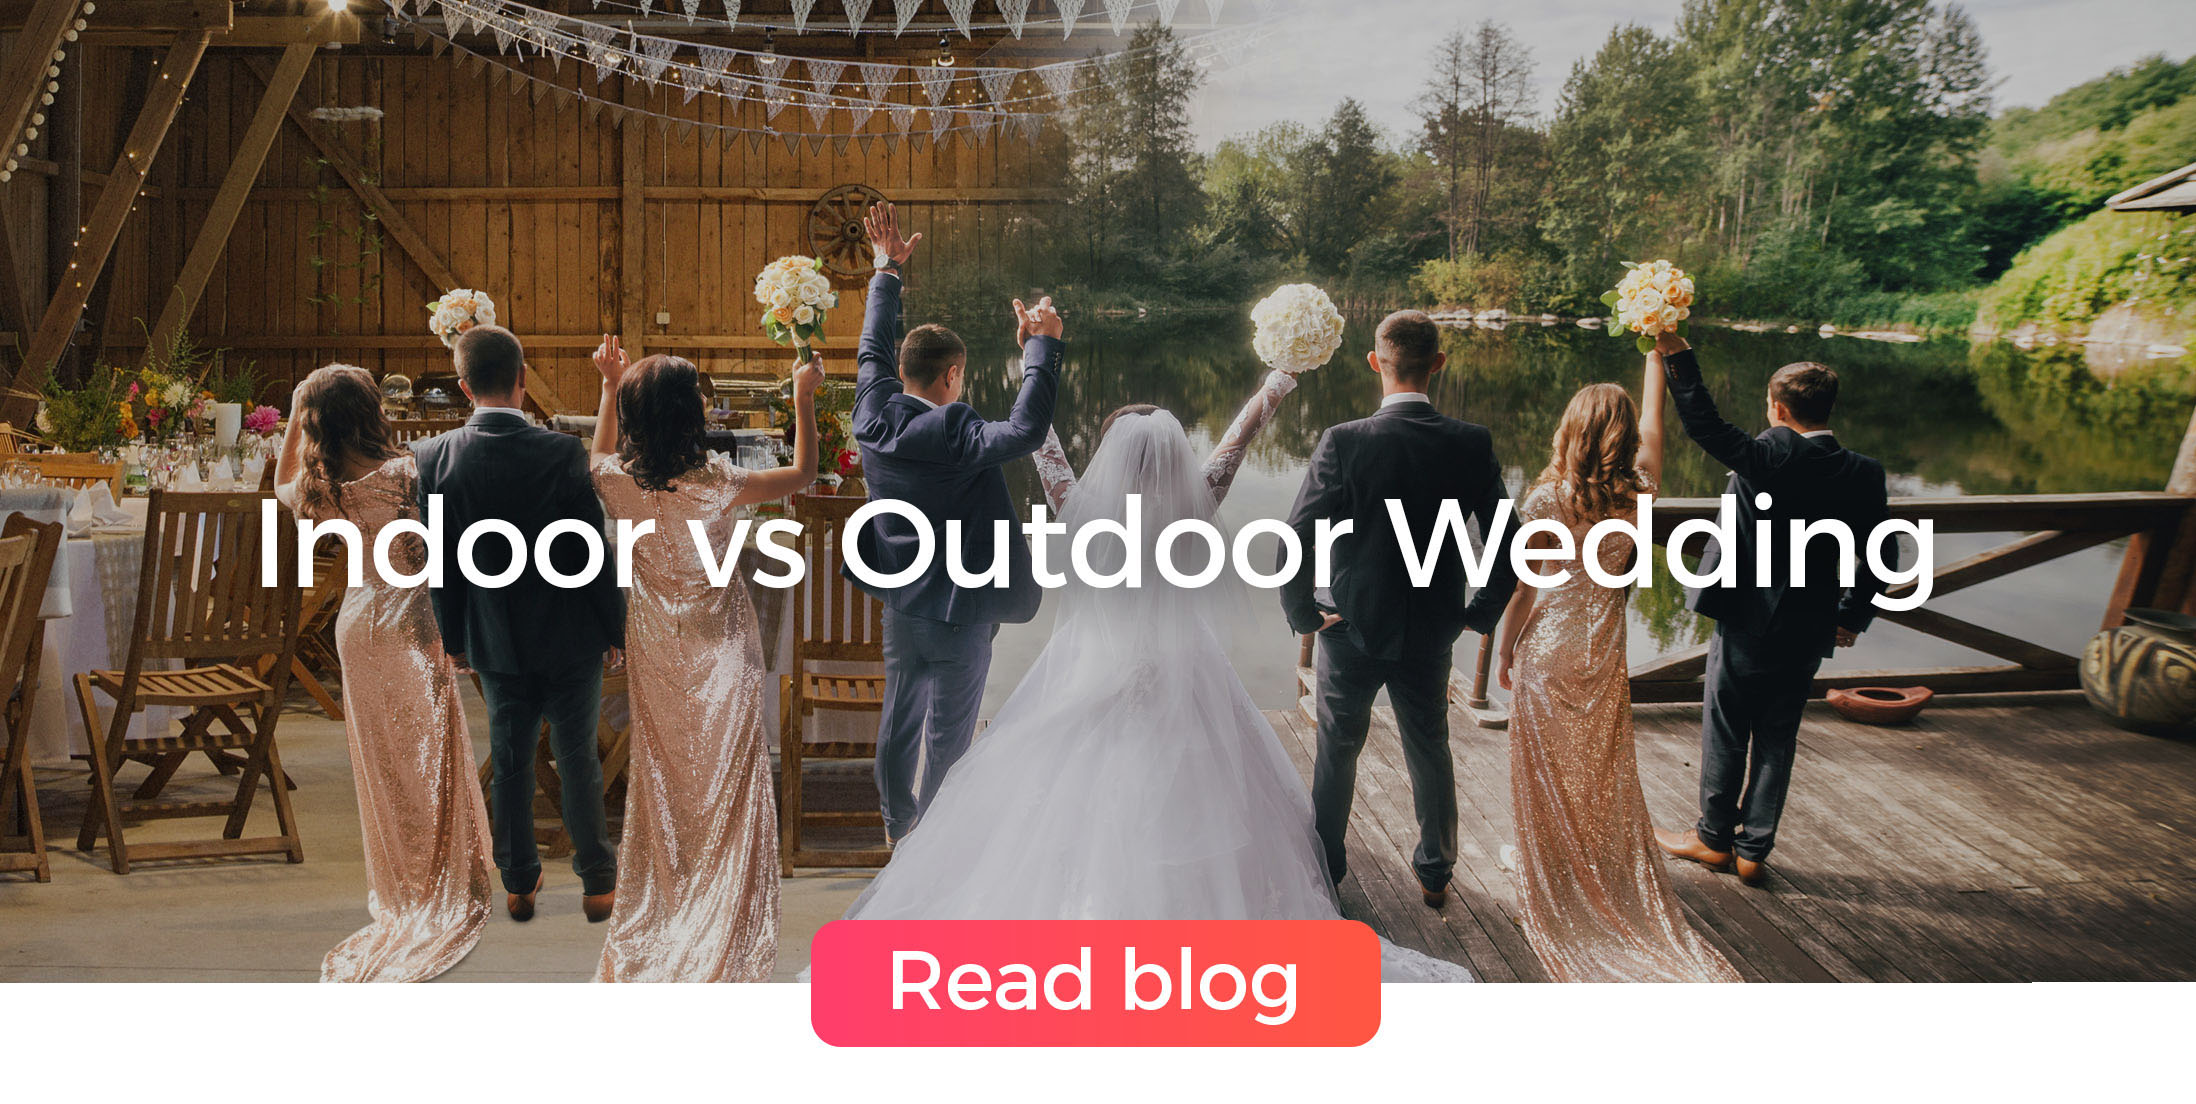 Indoor vs Outdoor Wedding - Read Blog